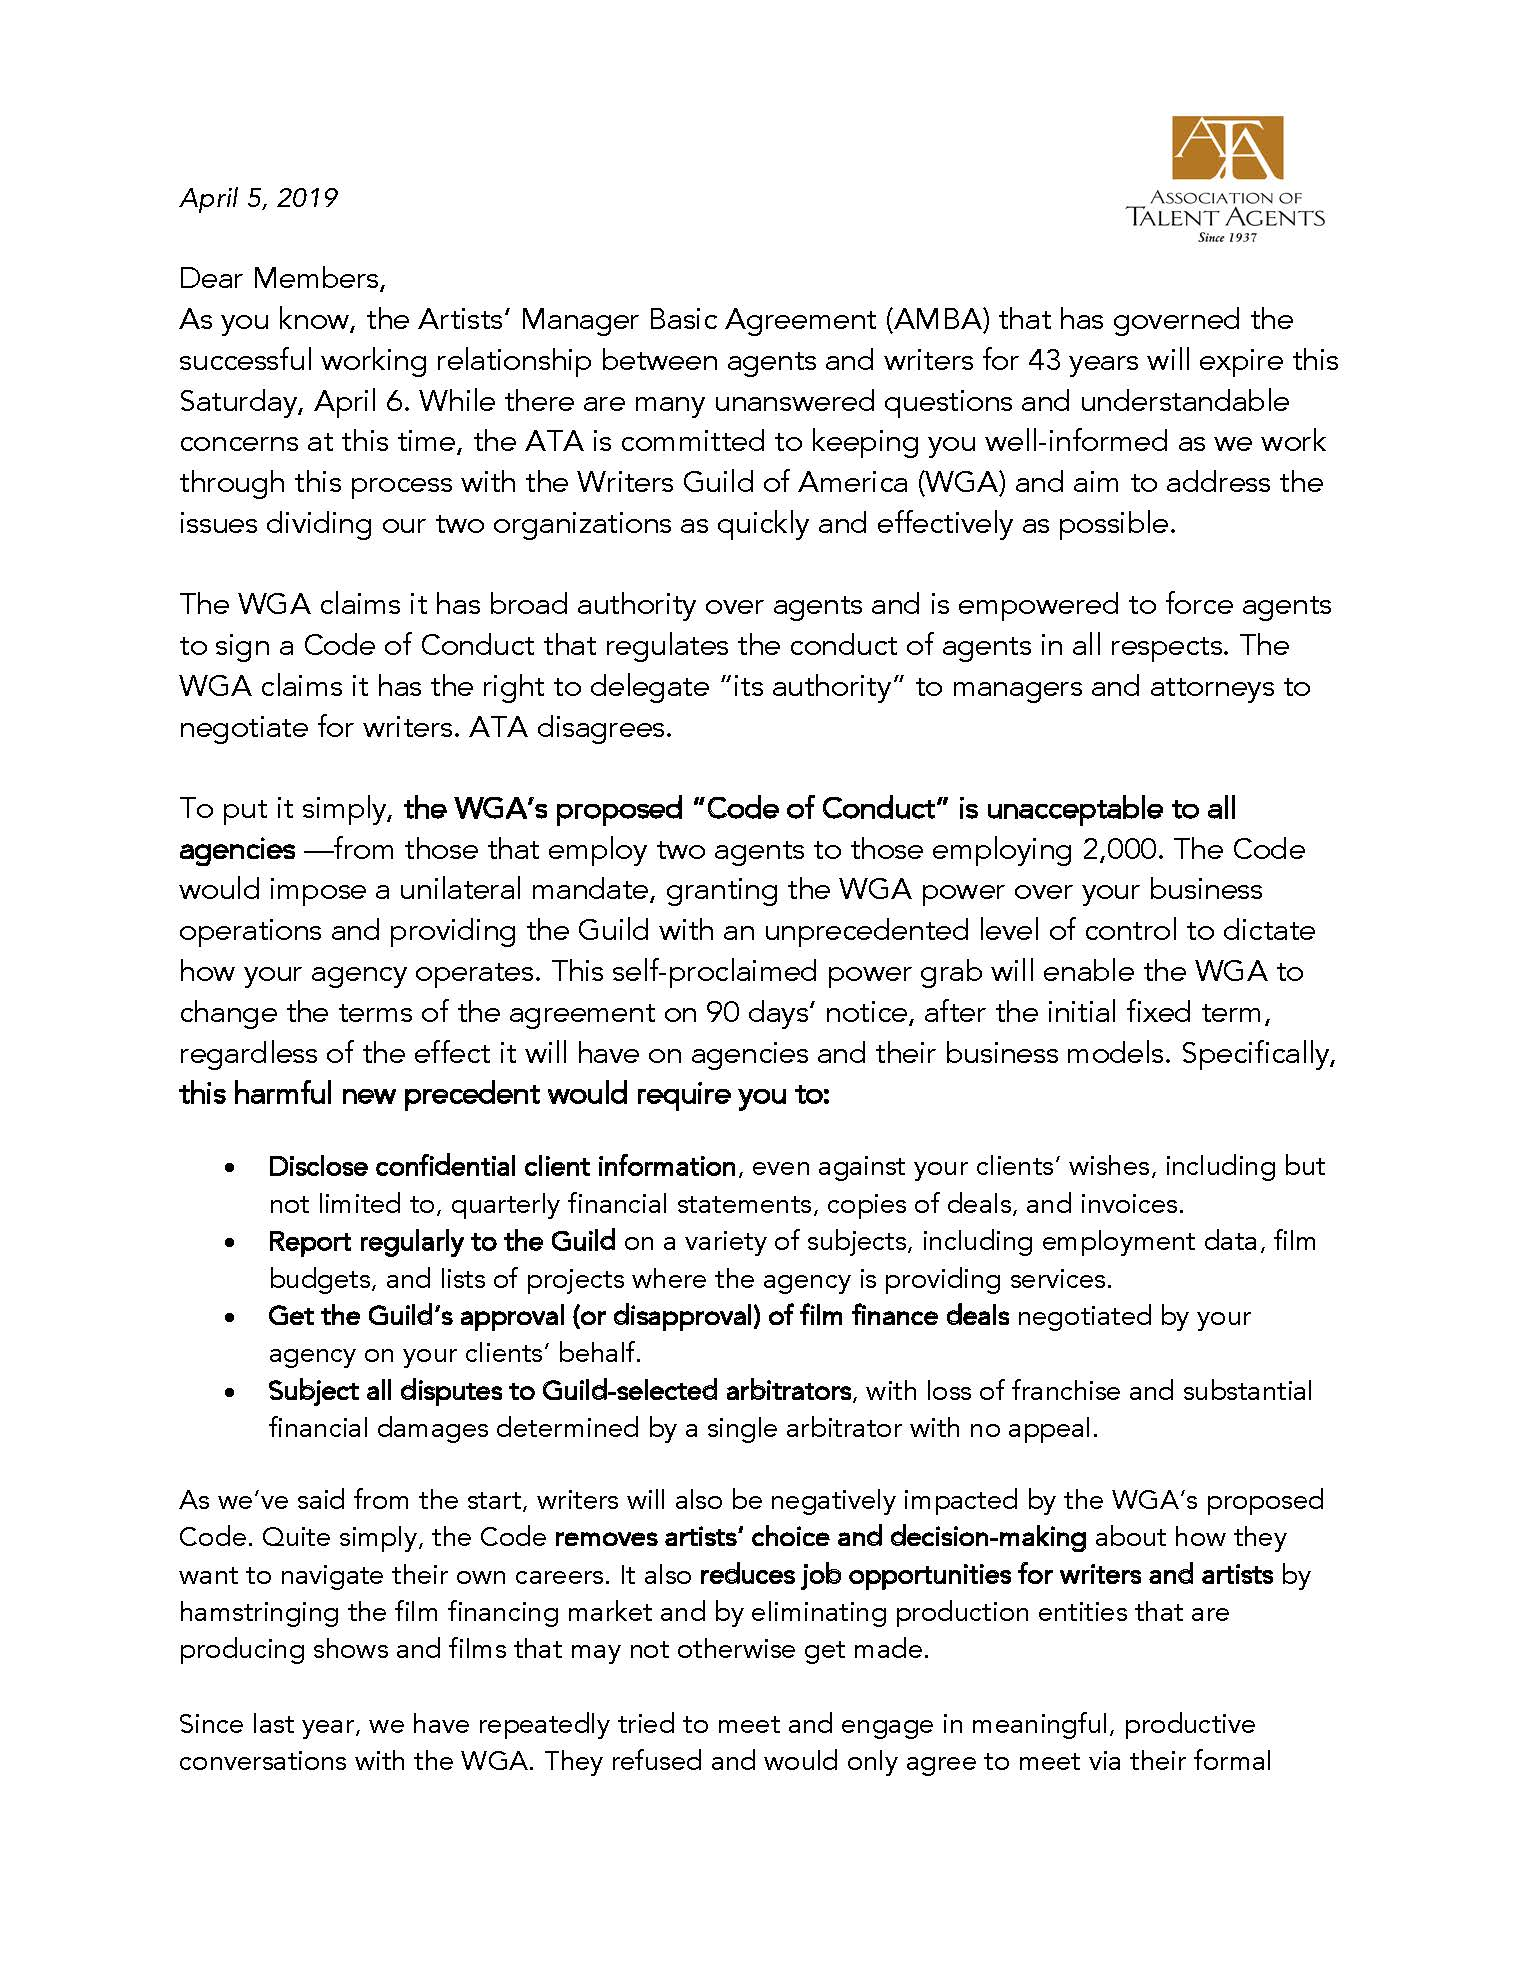 Association of Talent Agents - 2019 ARTISTS' MANAGER BASIC AGREEMENT